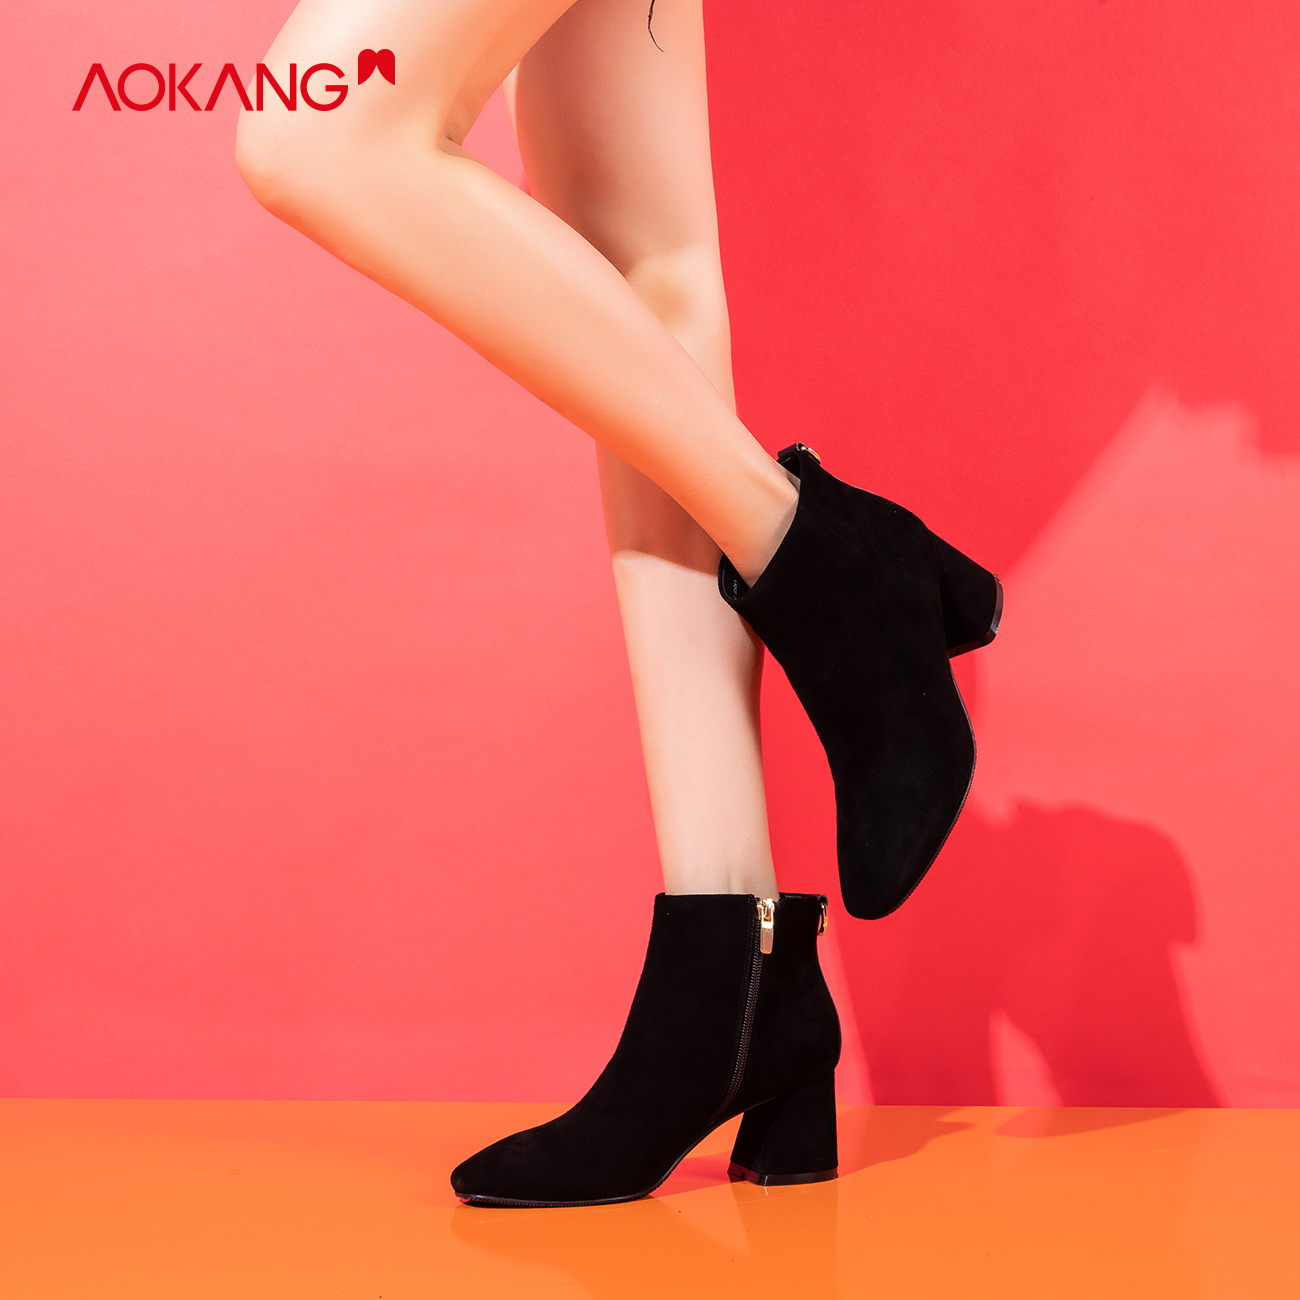 Aokang womens shoes 2020 winter new high heeled womens short boots solid suede retro letter with decorative fashion Ankle Boots